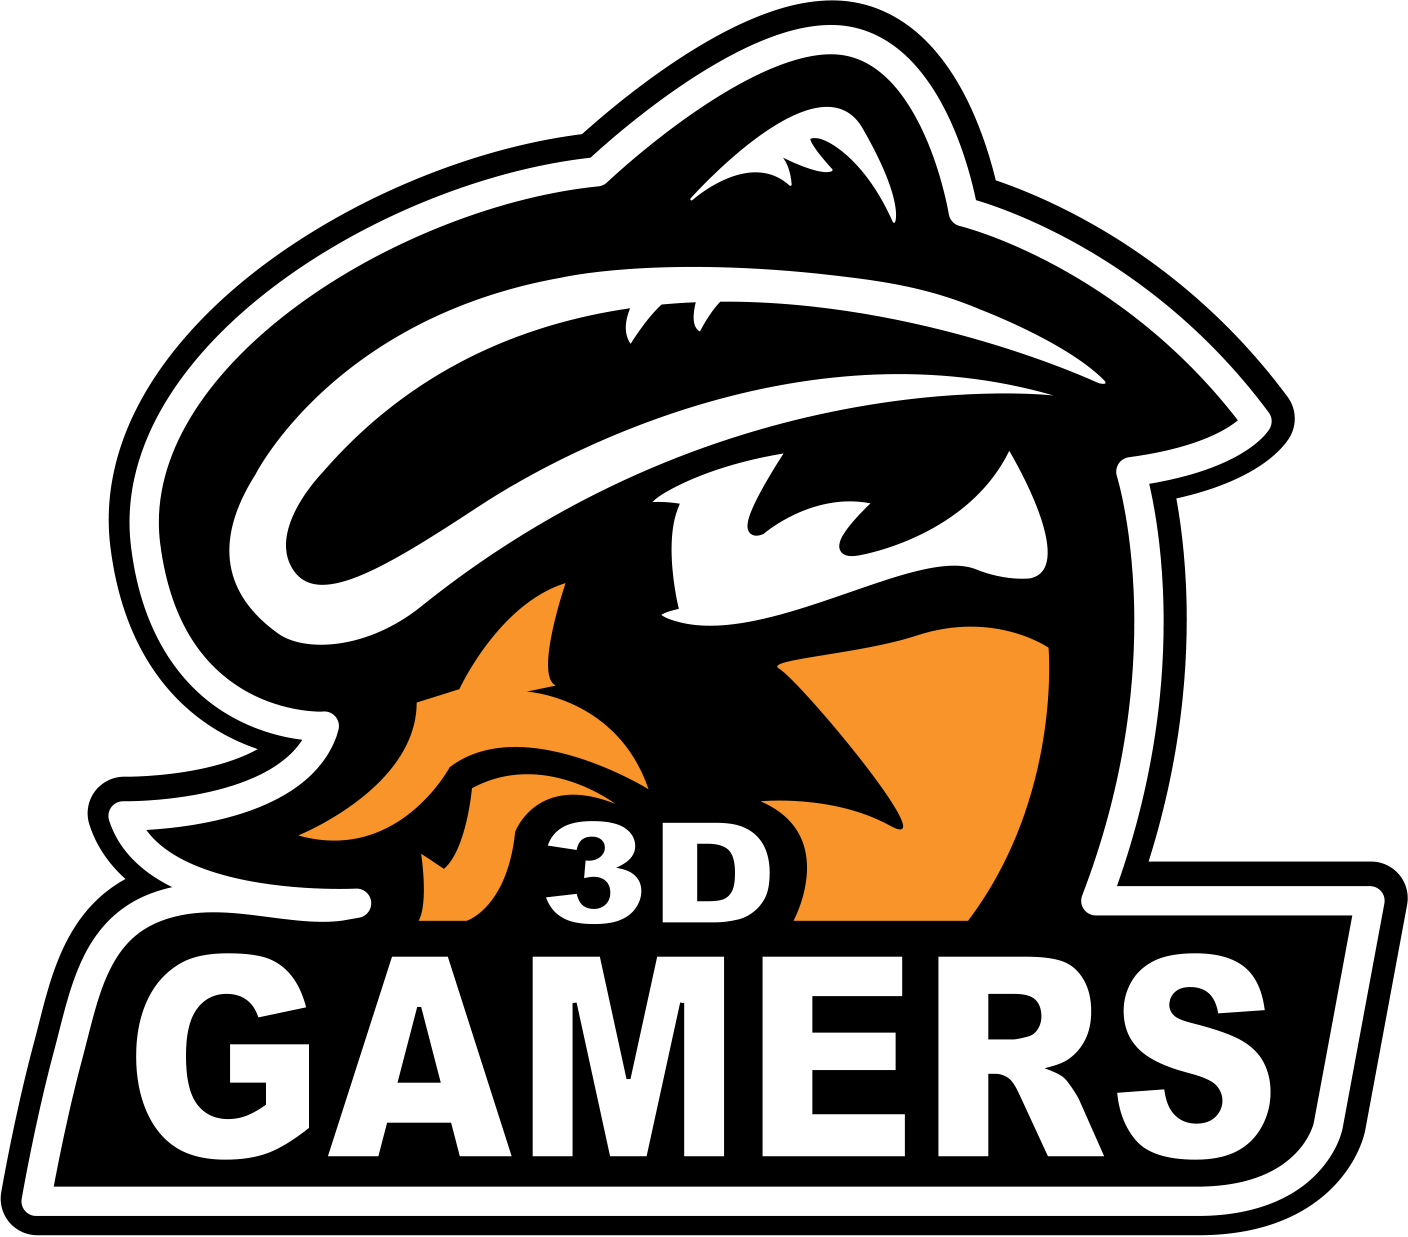 3DGamers